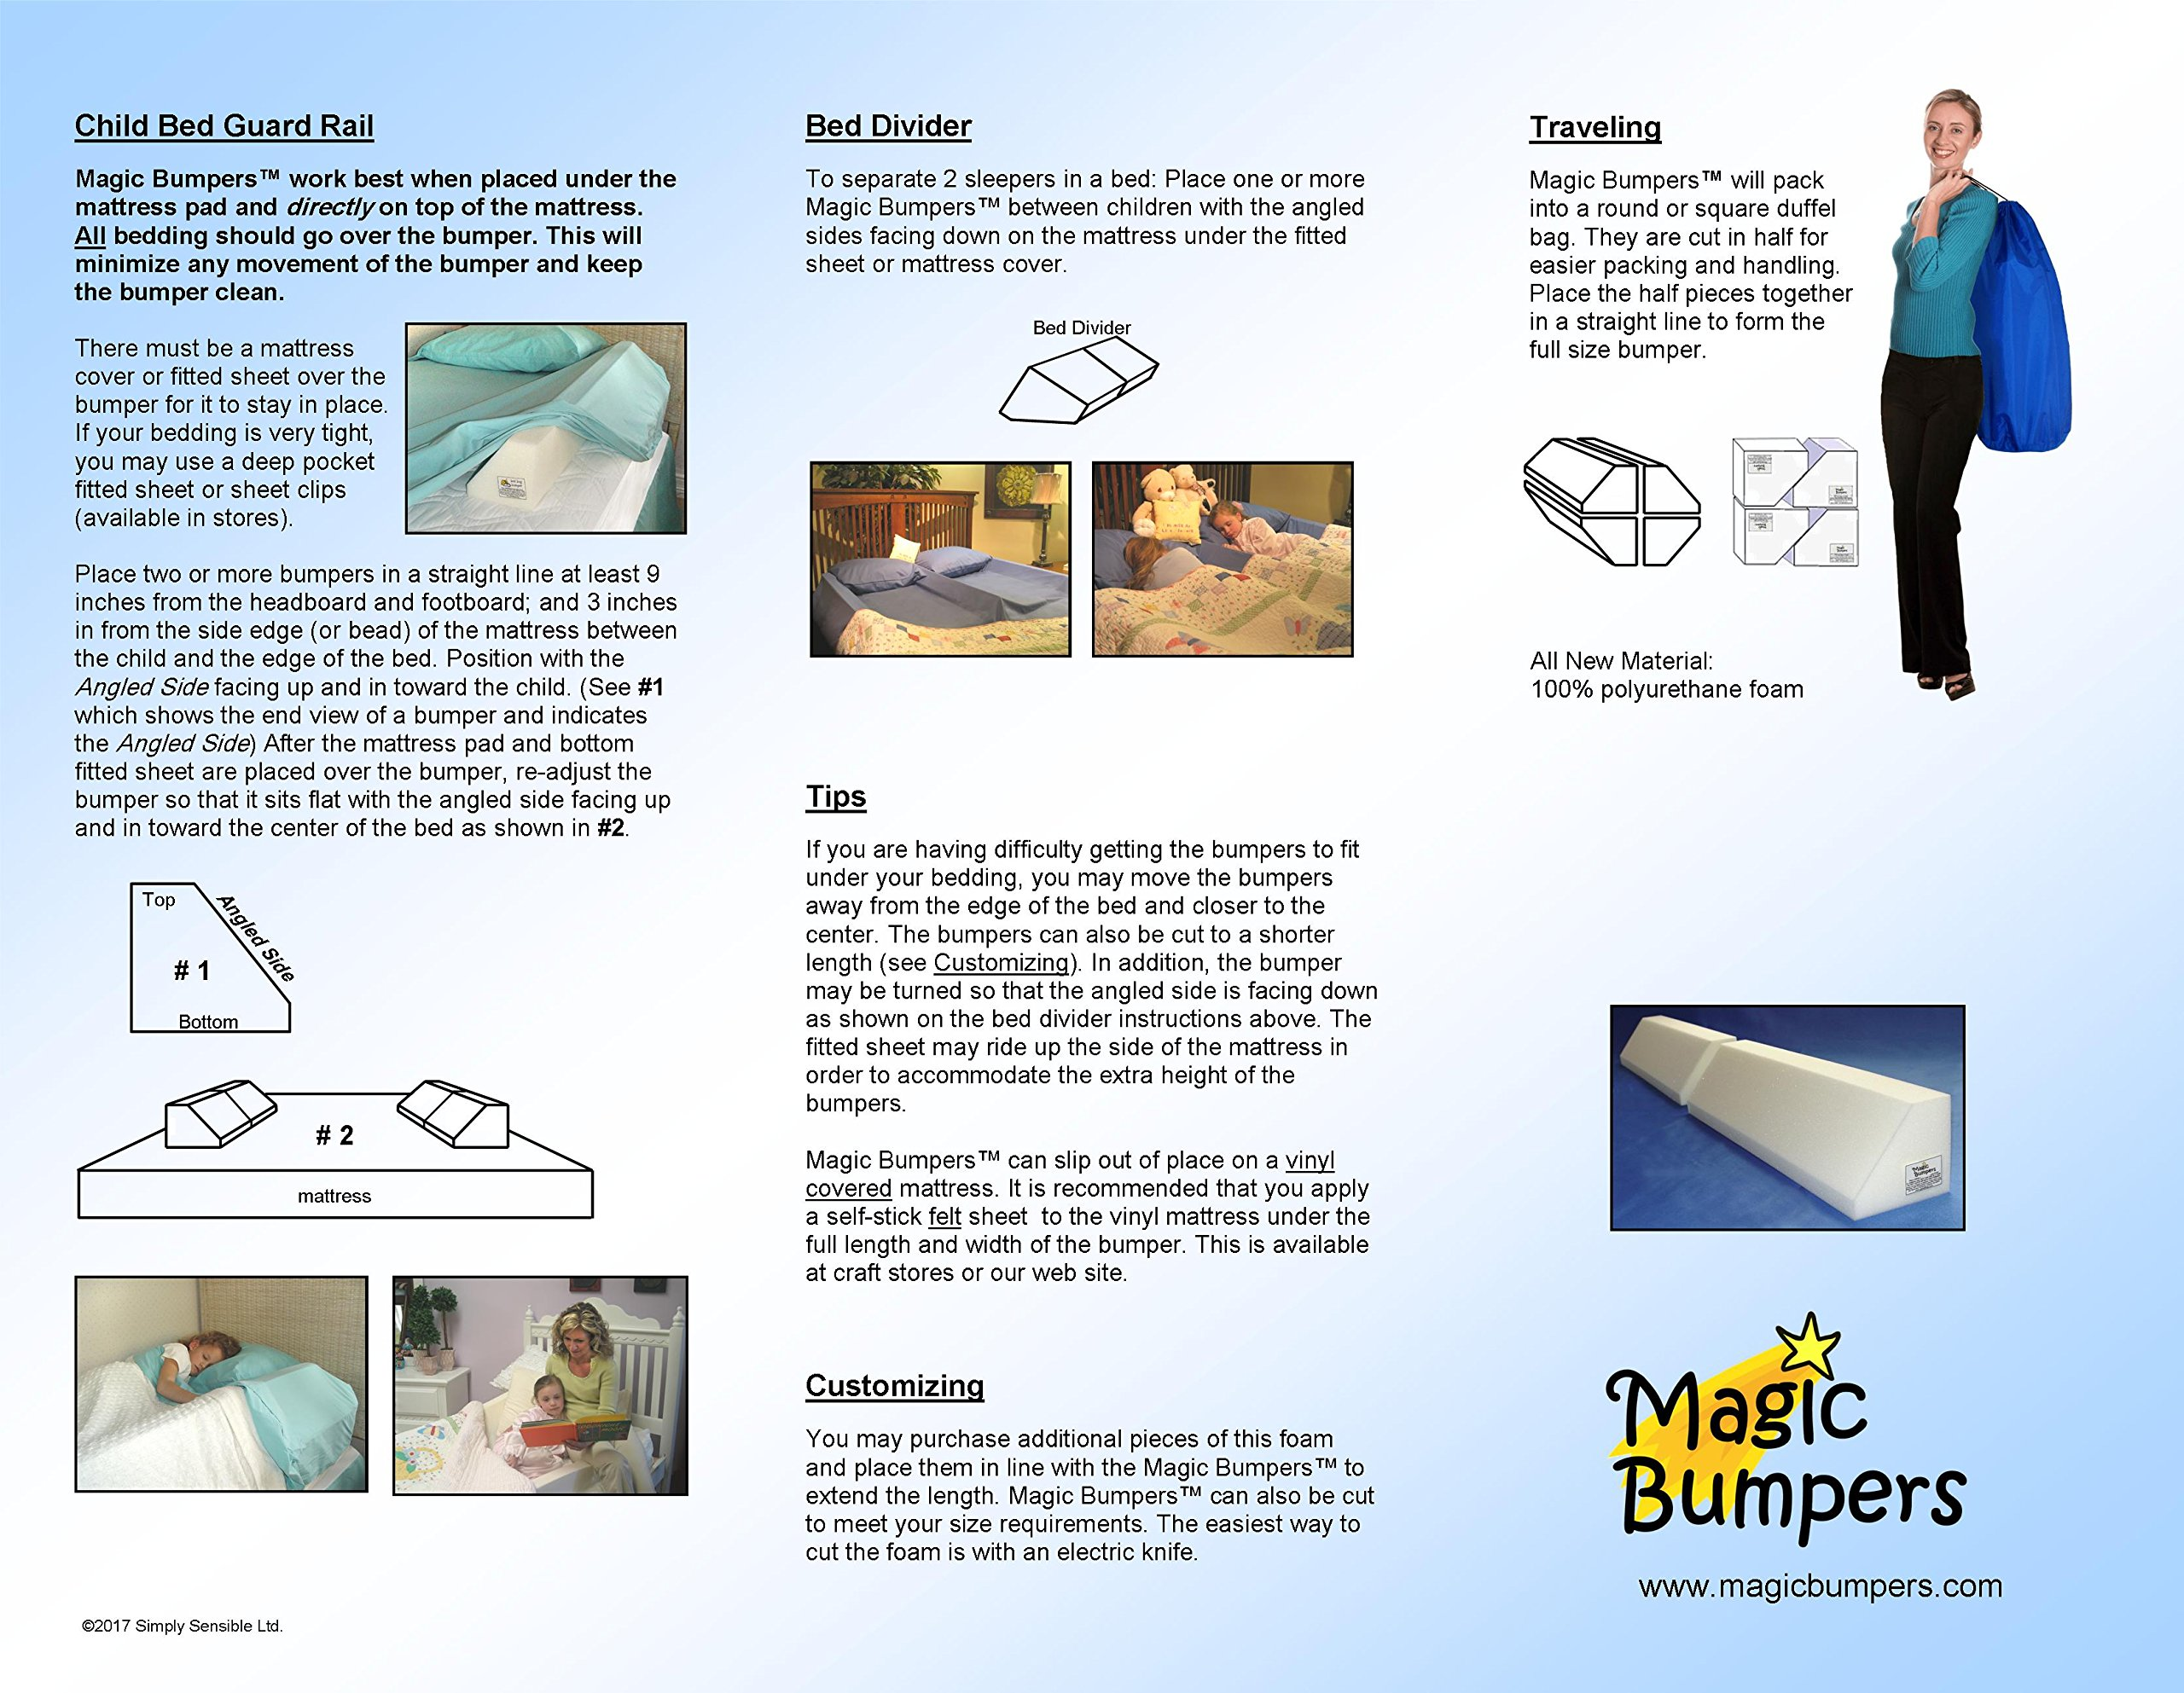 [2 Pack] Magic Bumpers Child Bed Safety Guard Rail 42 Inch - One Piece Design by Magic Bumpers (Image #7)